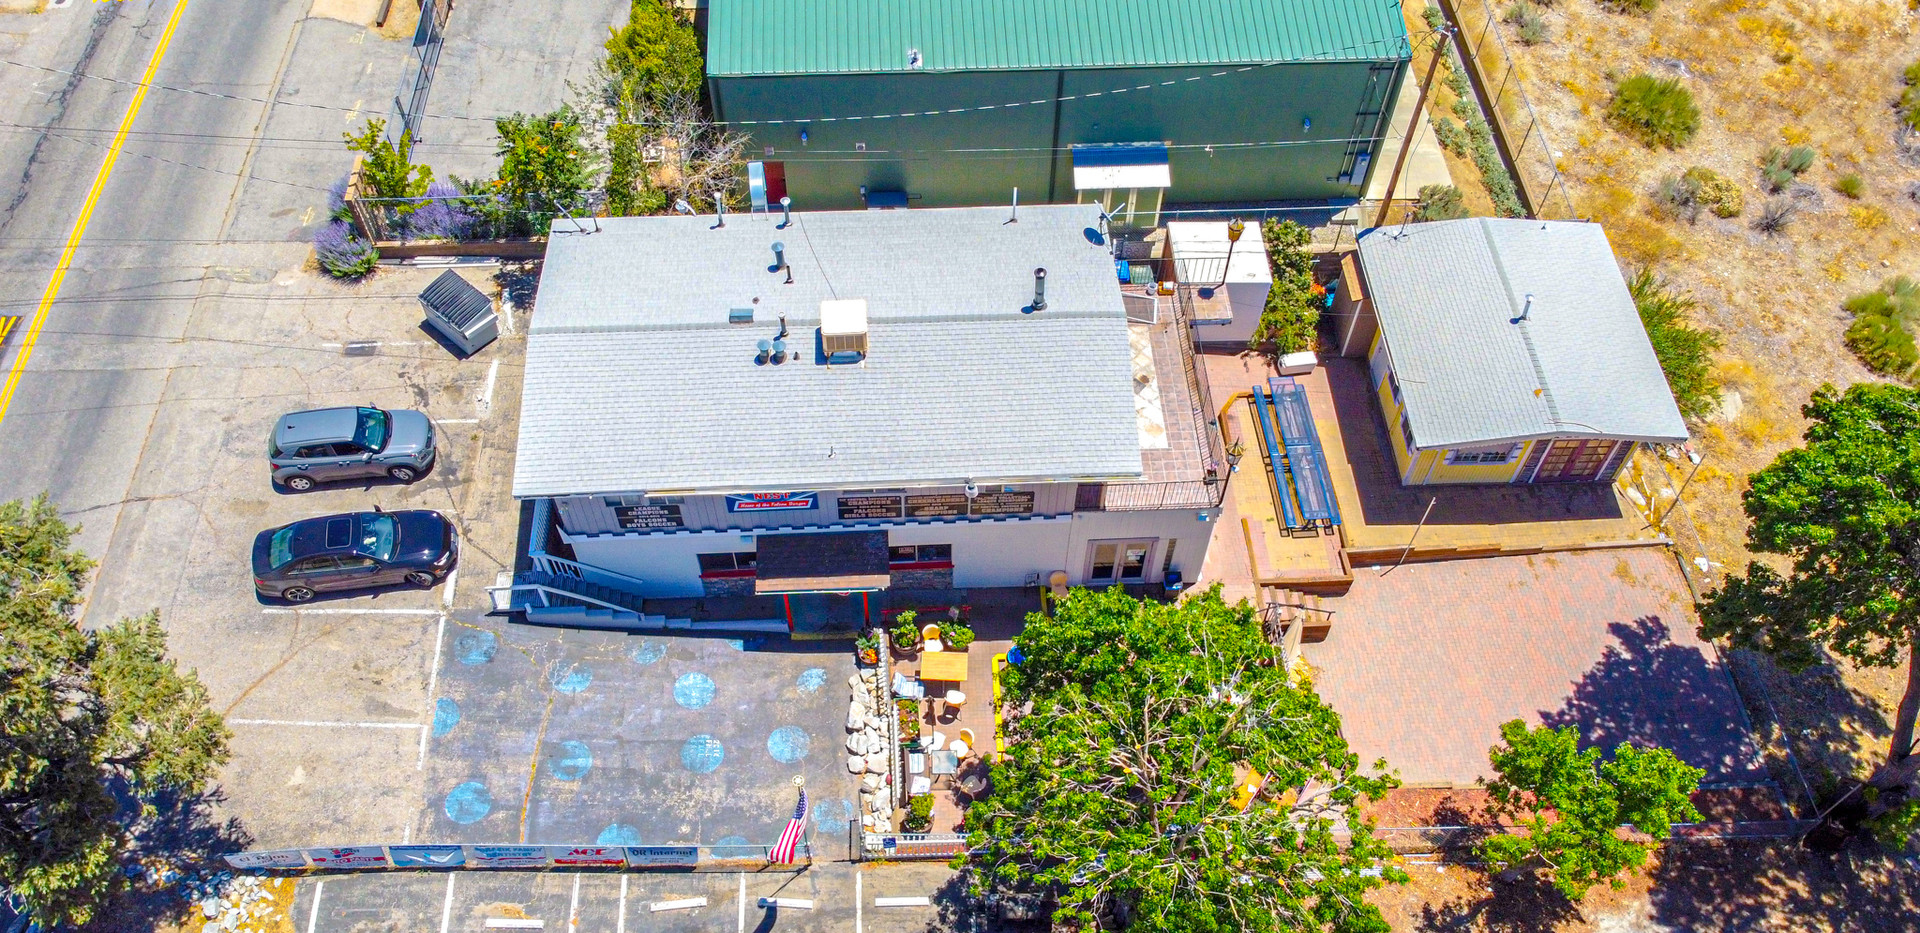 Aerial View of the Mixed Use Property